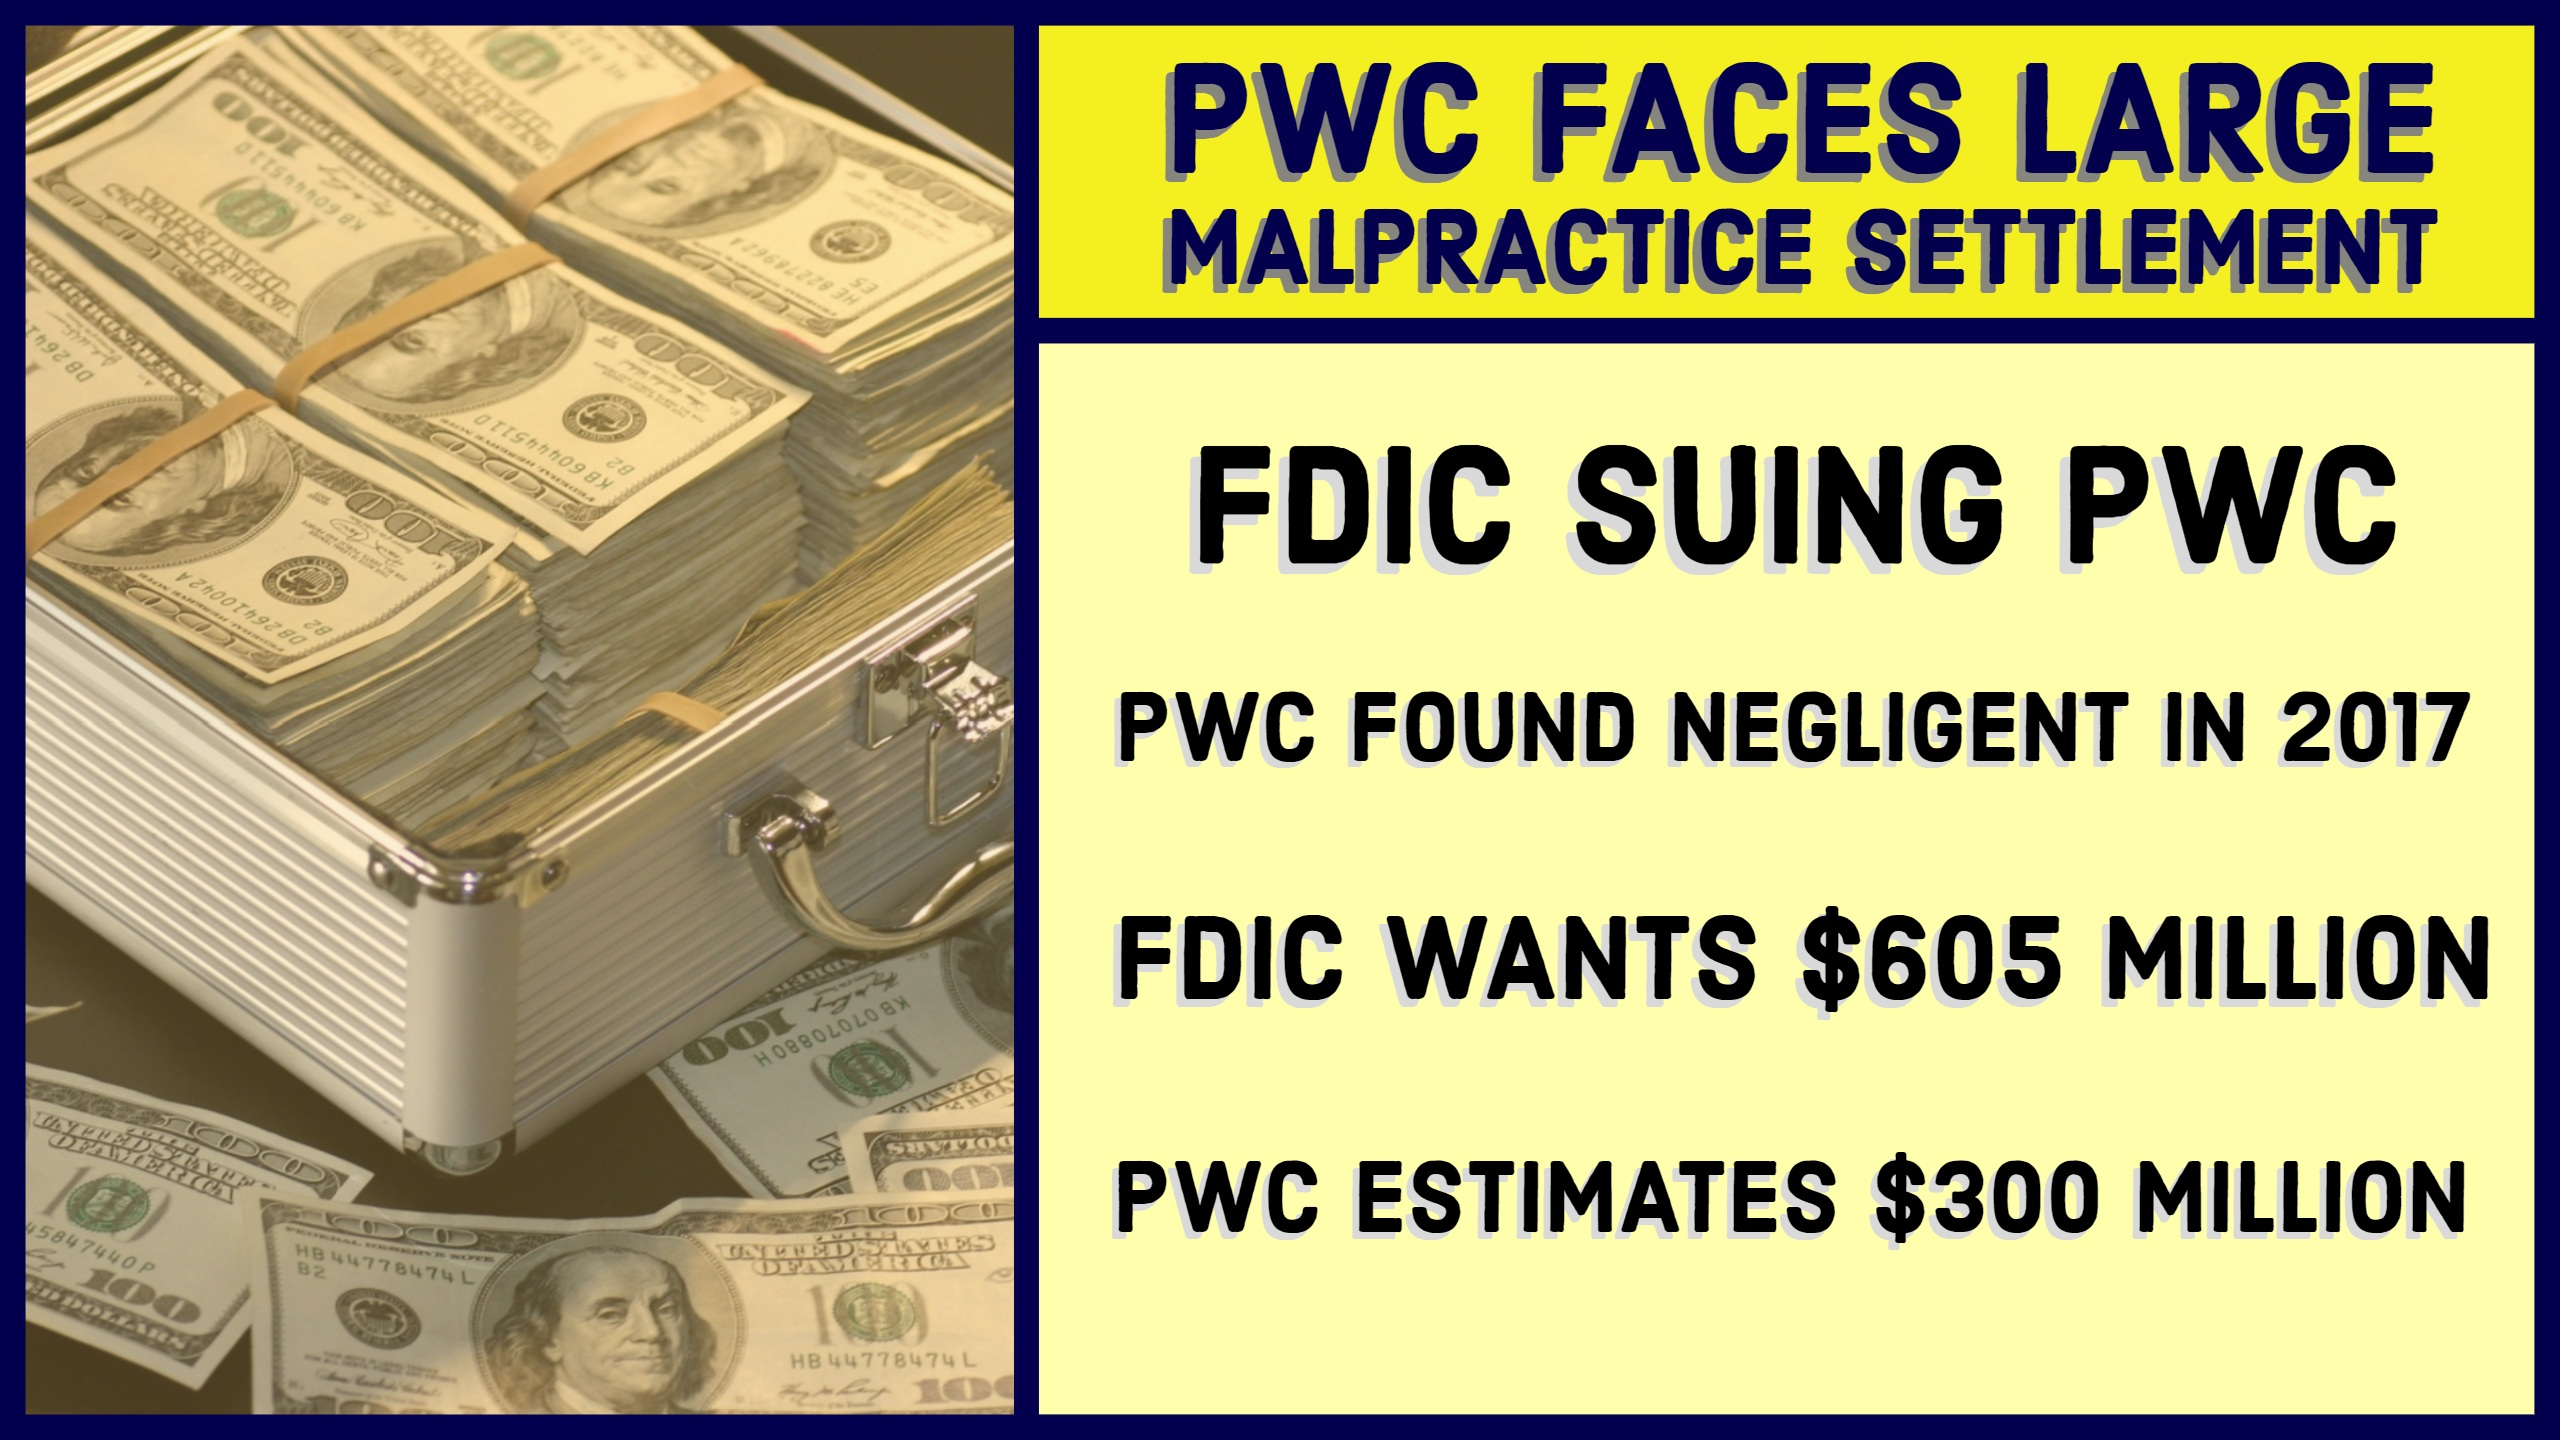 pwc 2018 fdic lawsuit